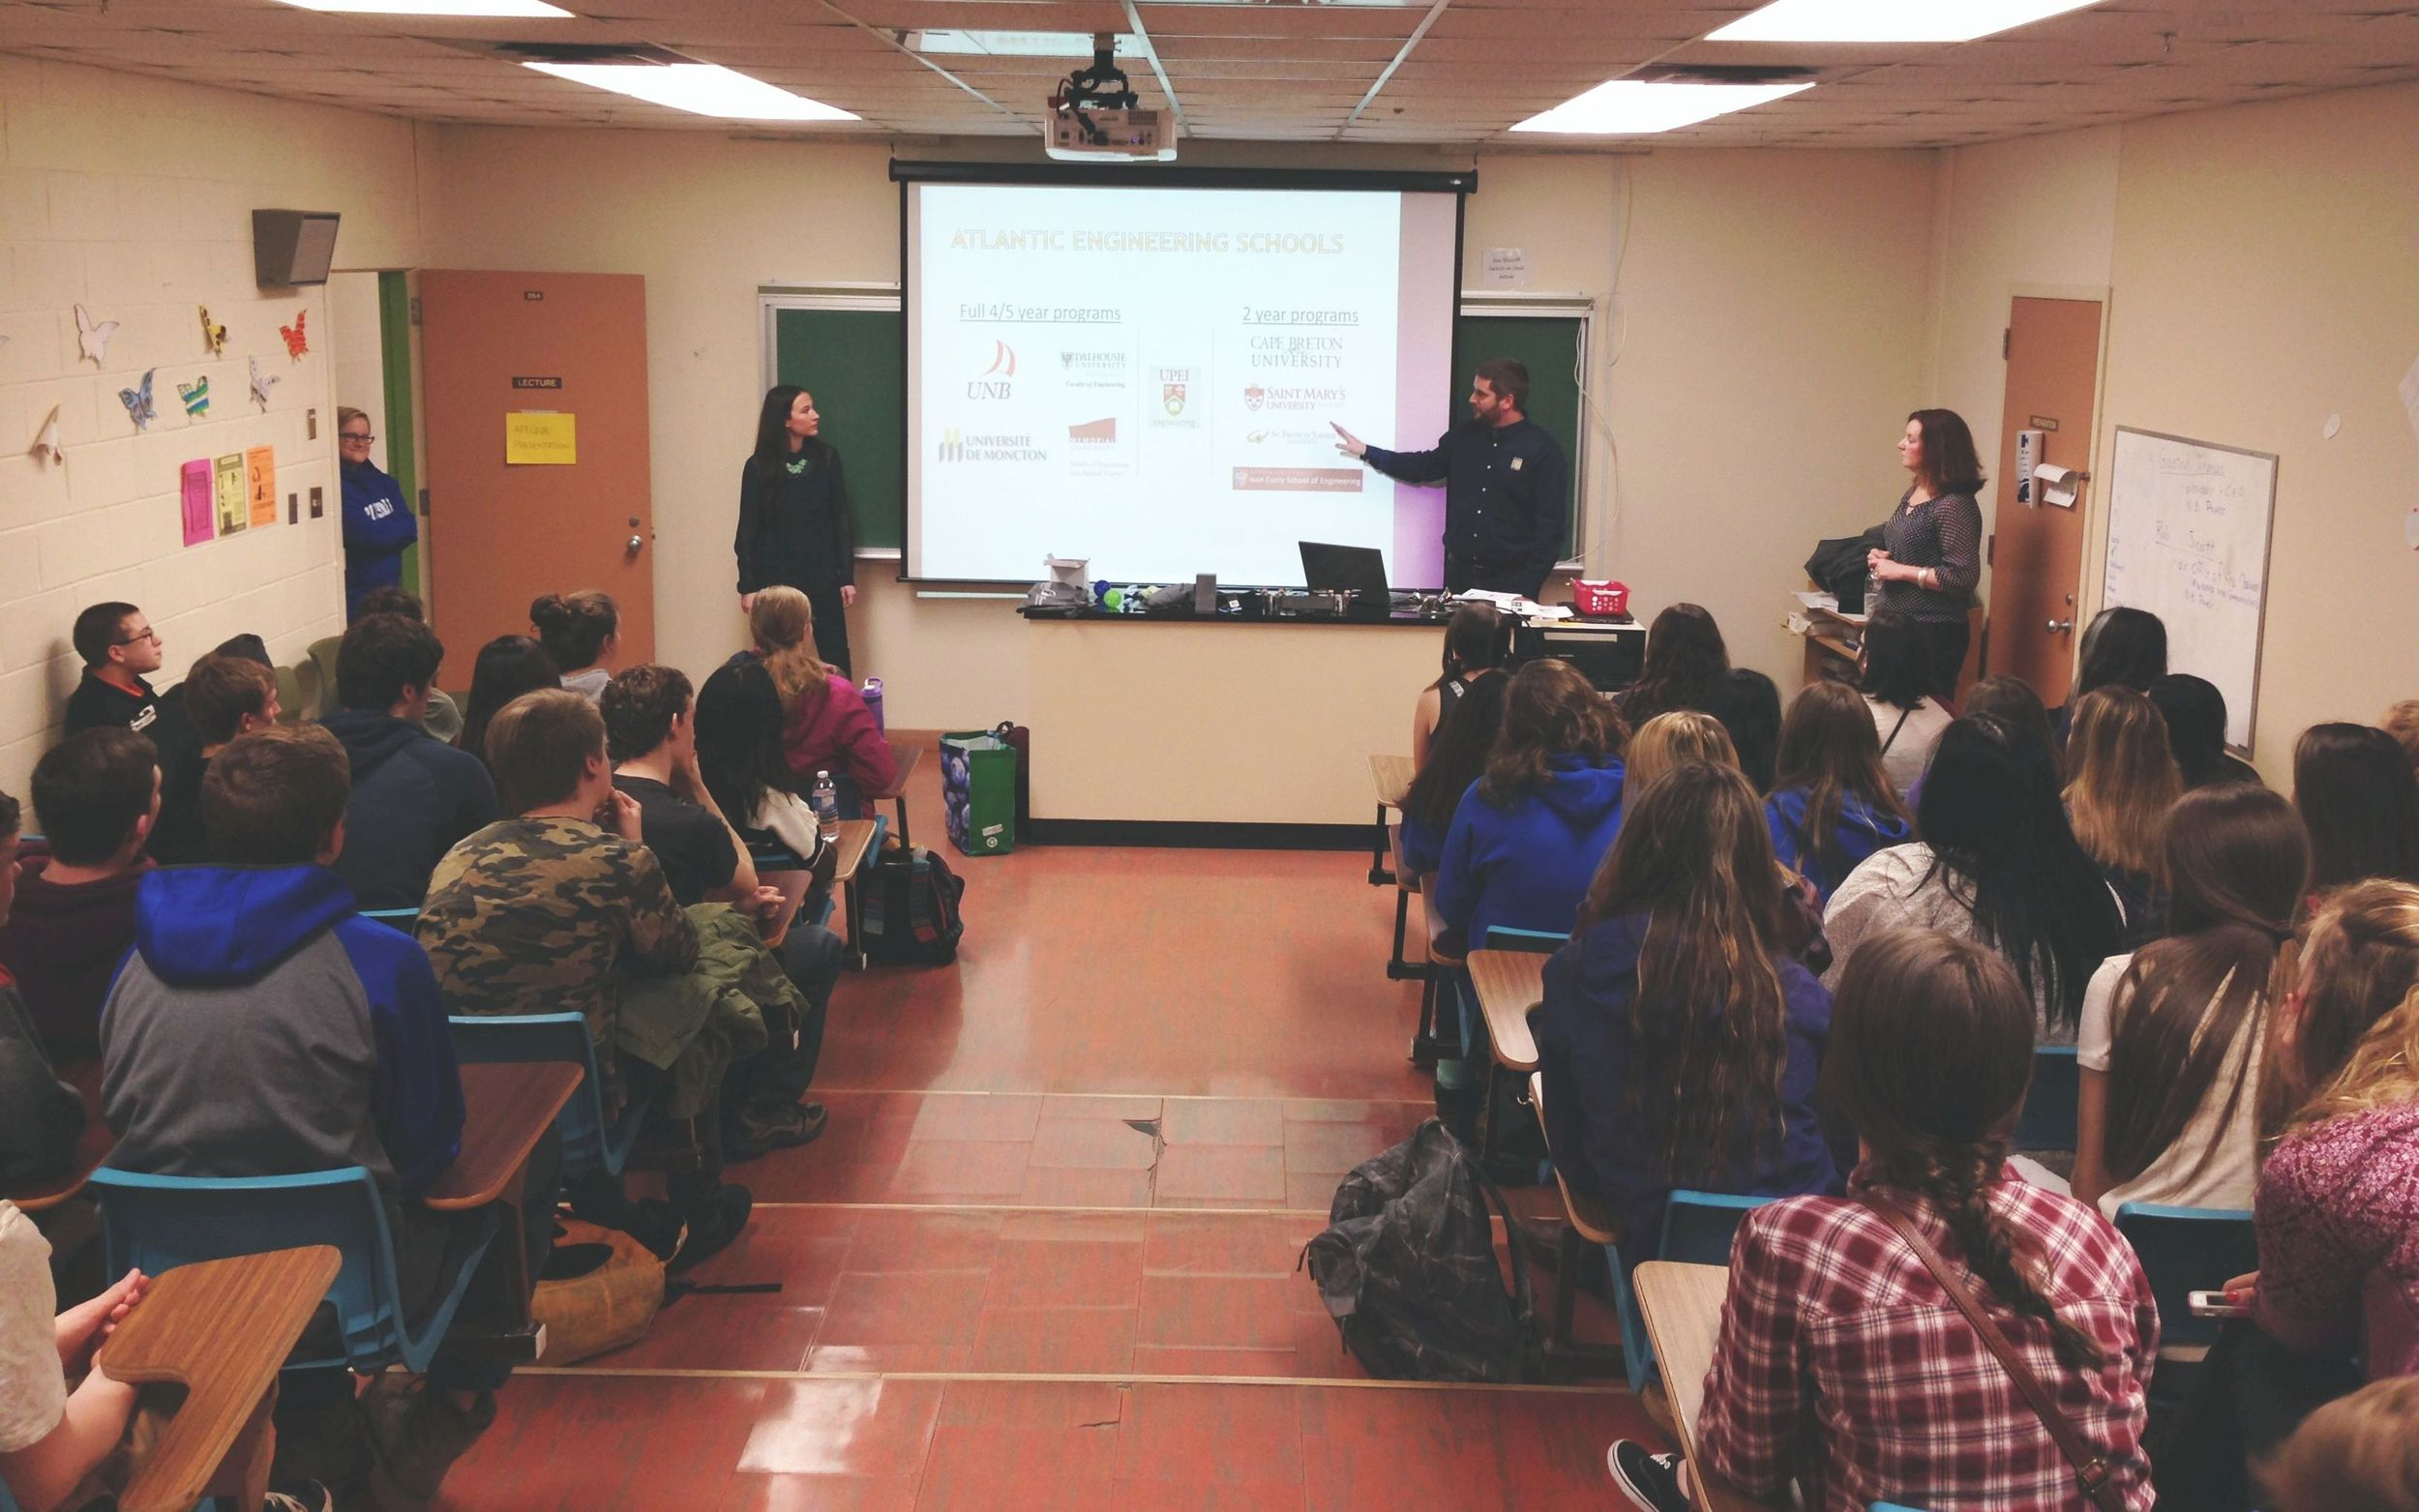 Lindsay Wilcott, Jeff Underhill and Tanya Horgan speaking to 70+ students at KV   High on March 18, 2016